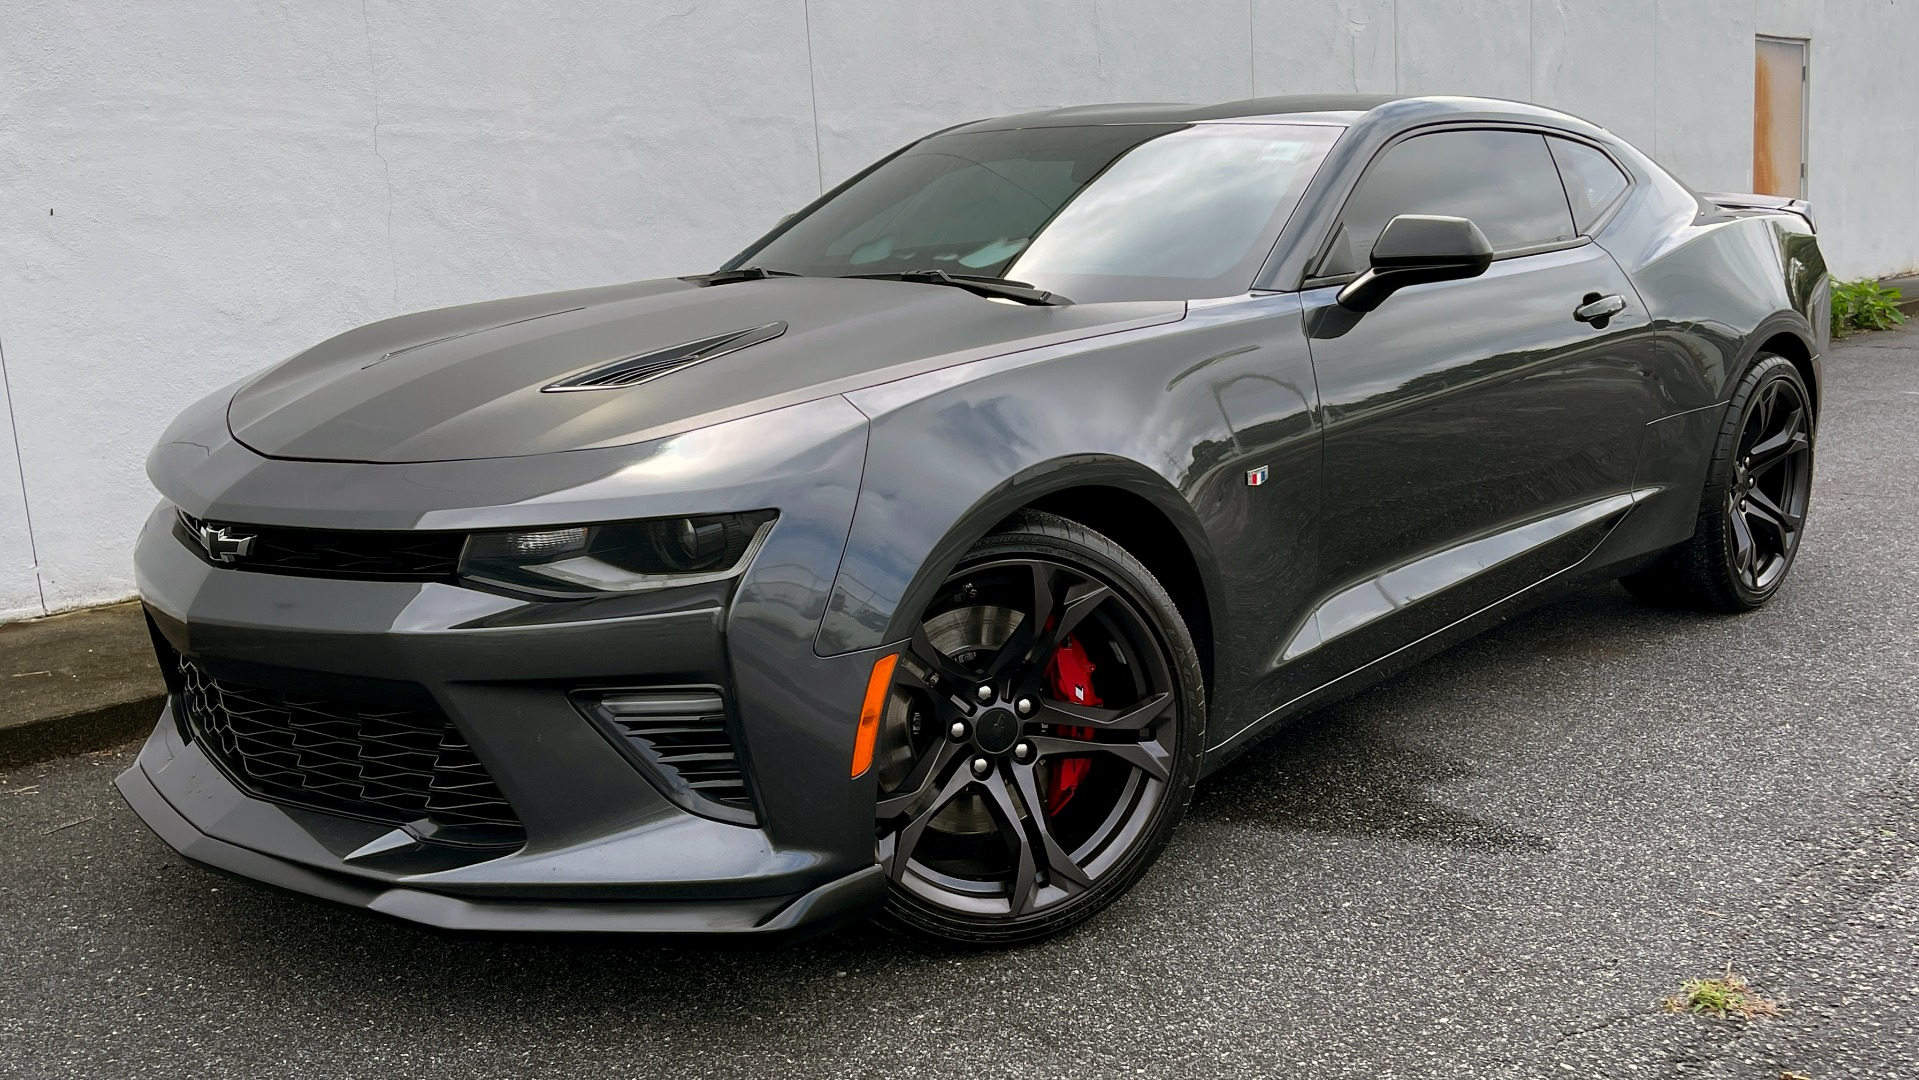 Used 2018 Chevrolet CAMARO 2SS / 6.2L V8 / MANUAL / 1LE TRACK PKG / NAV / BOSE / REARVIEW for sale $39,795 at Formula Imports in Charlotte NC 28227 1